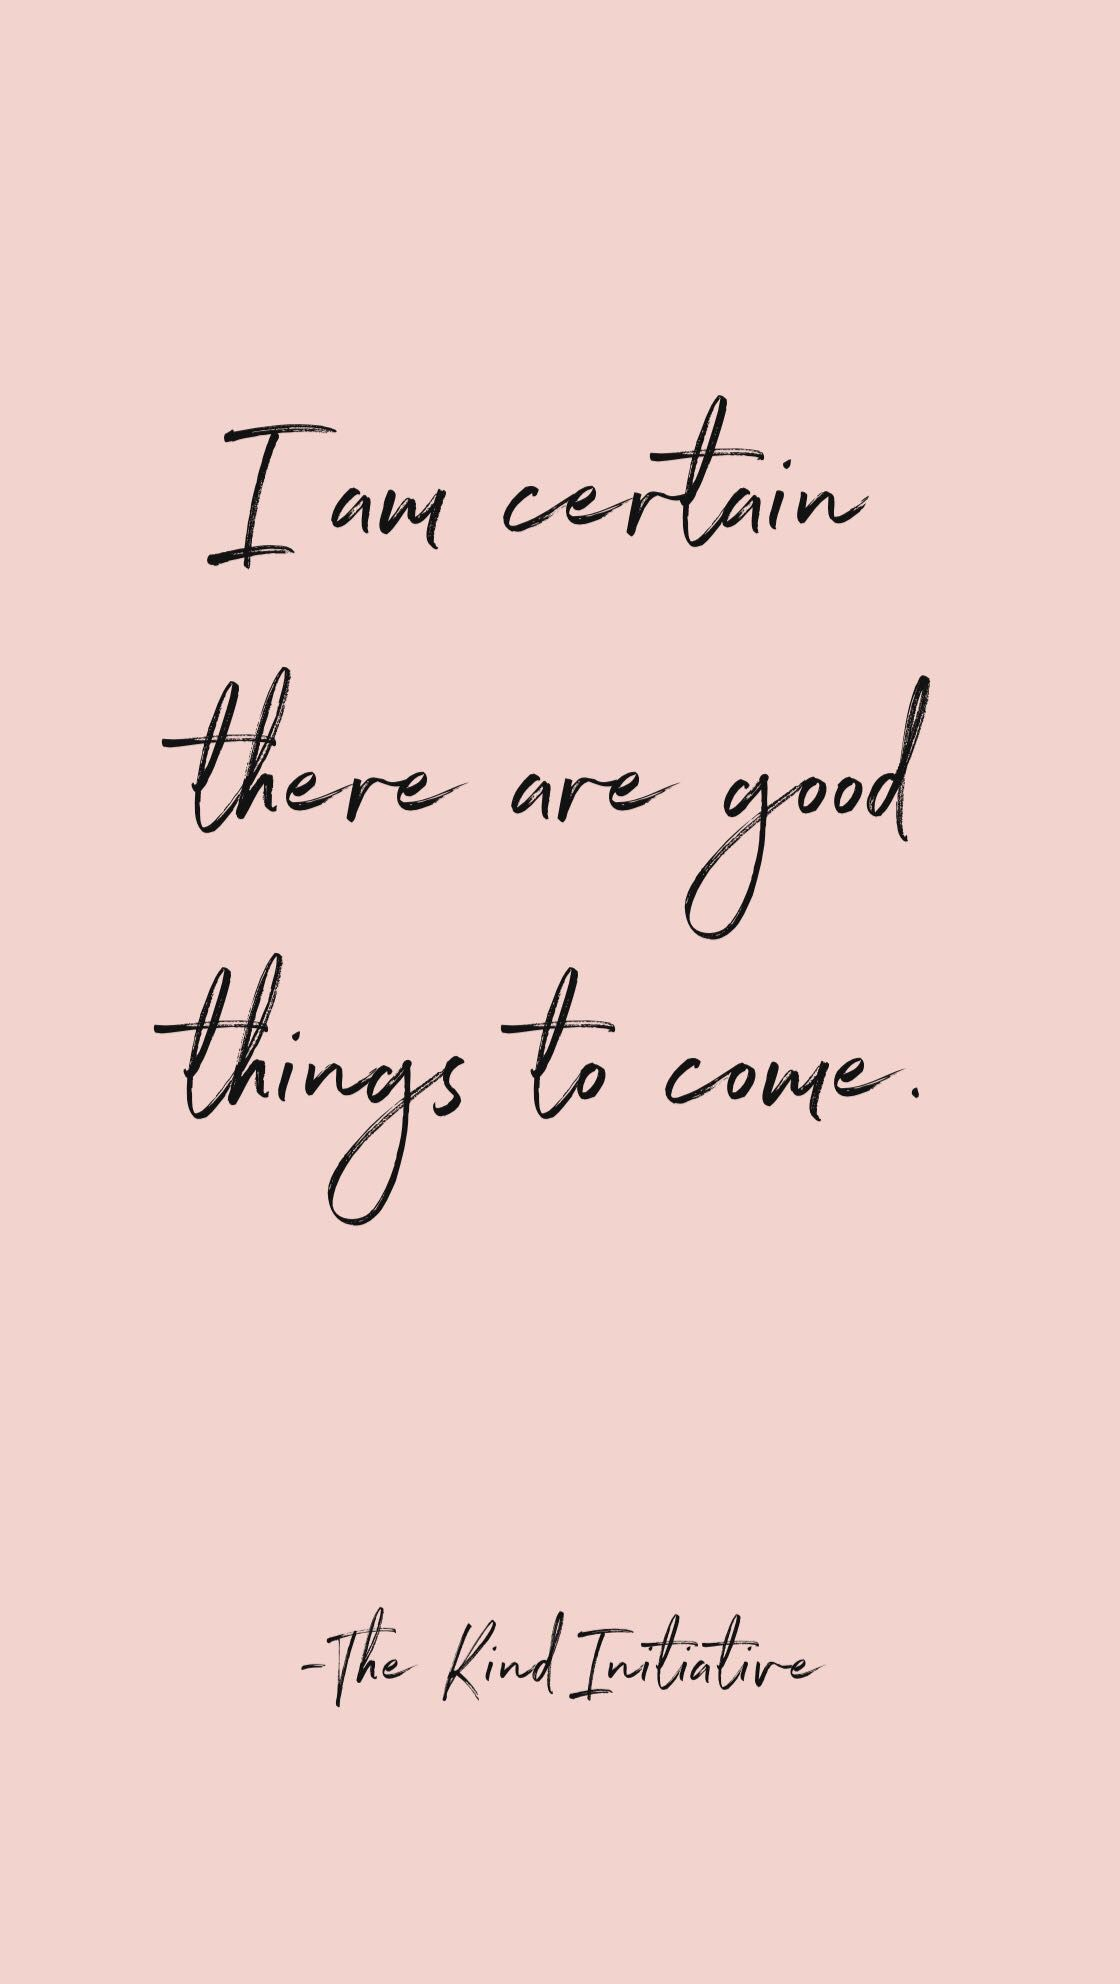 I Am Certain There Are Good Things To Come Inspirational Mindset